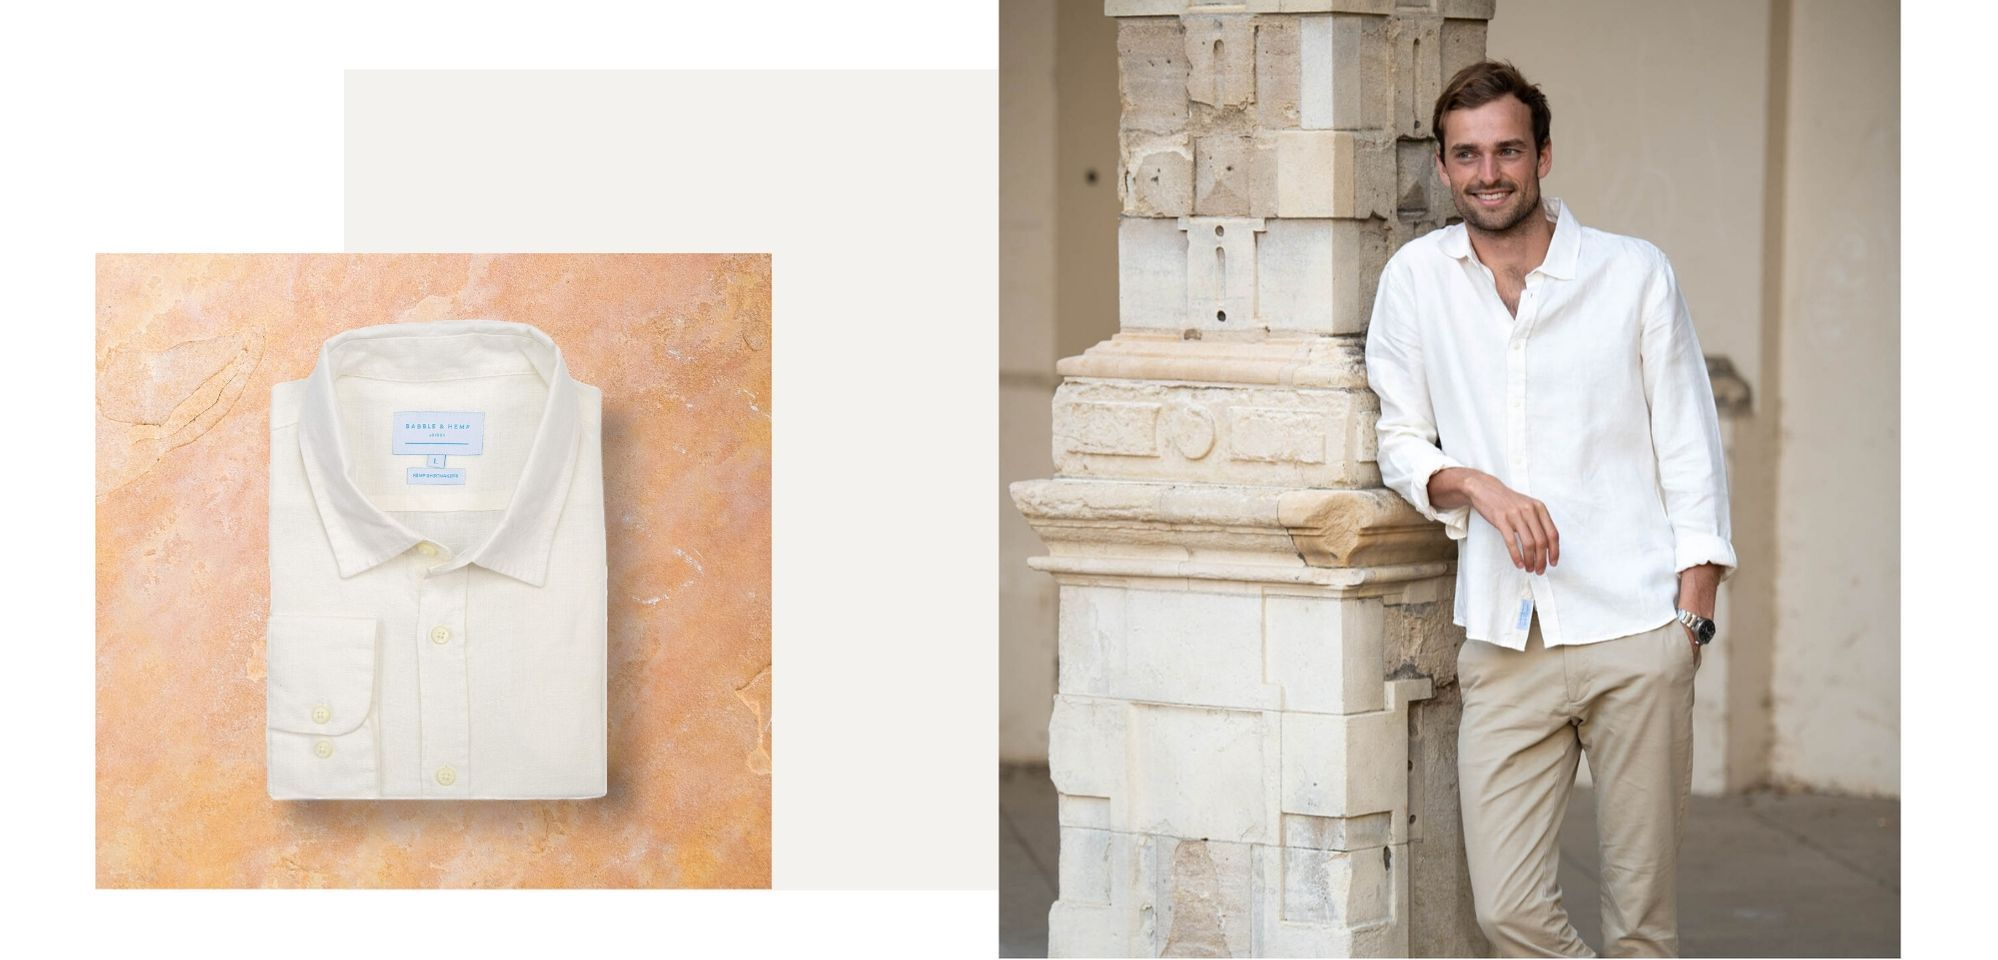 hemp clothing by babble & hemp. an image showing a man wearing our portobello ivory off-white hemp shirt whilst leaning against a pillar